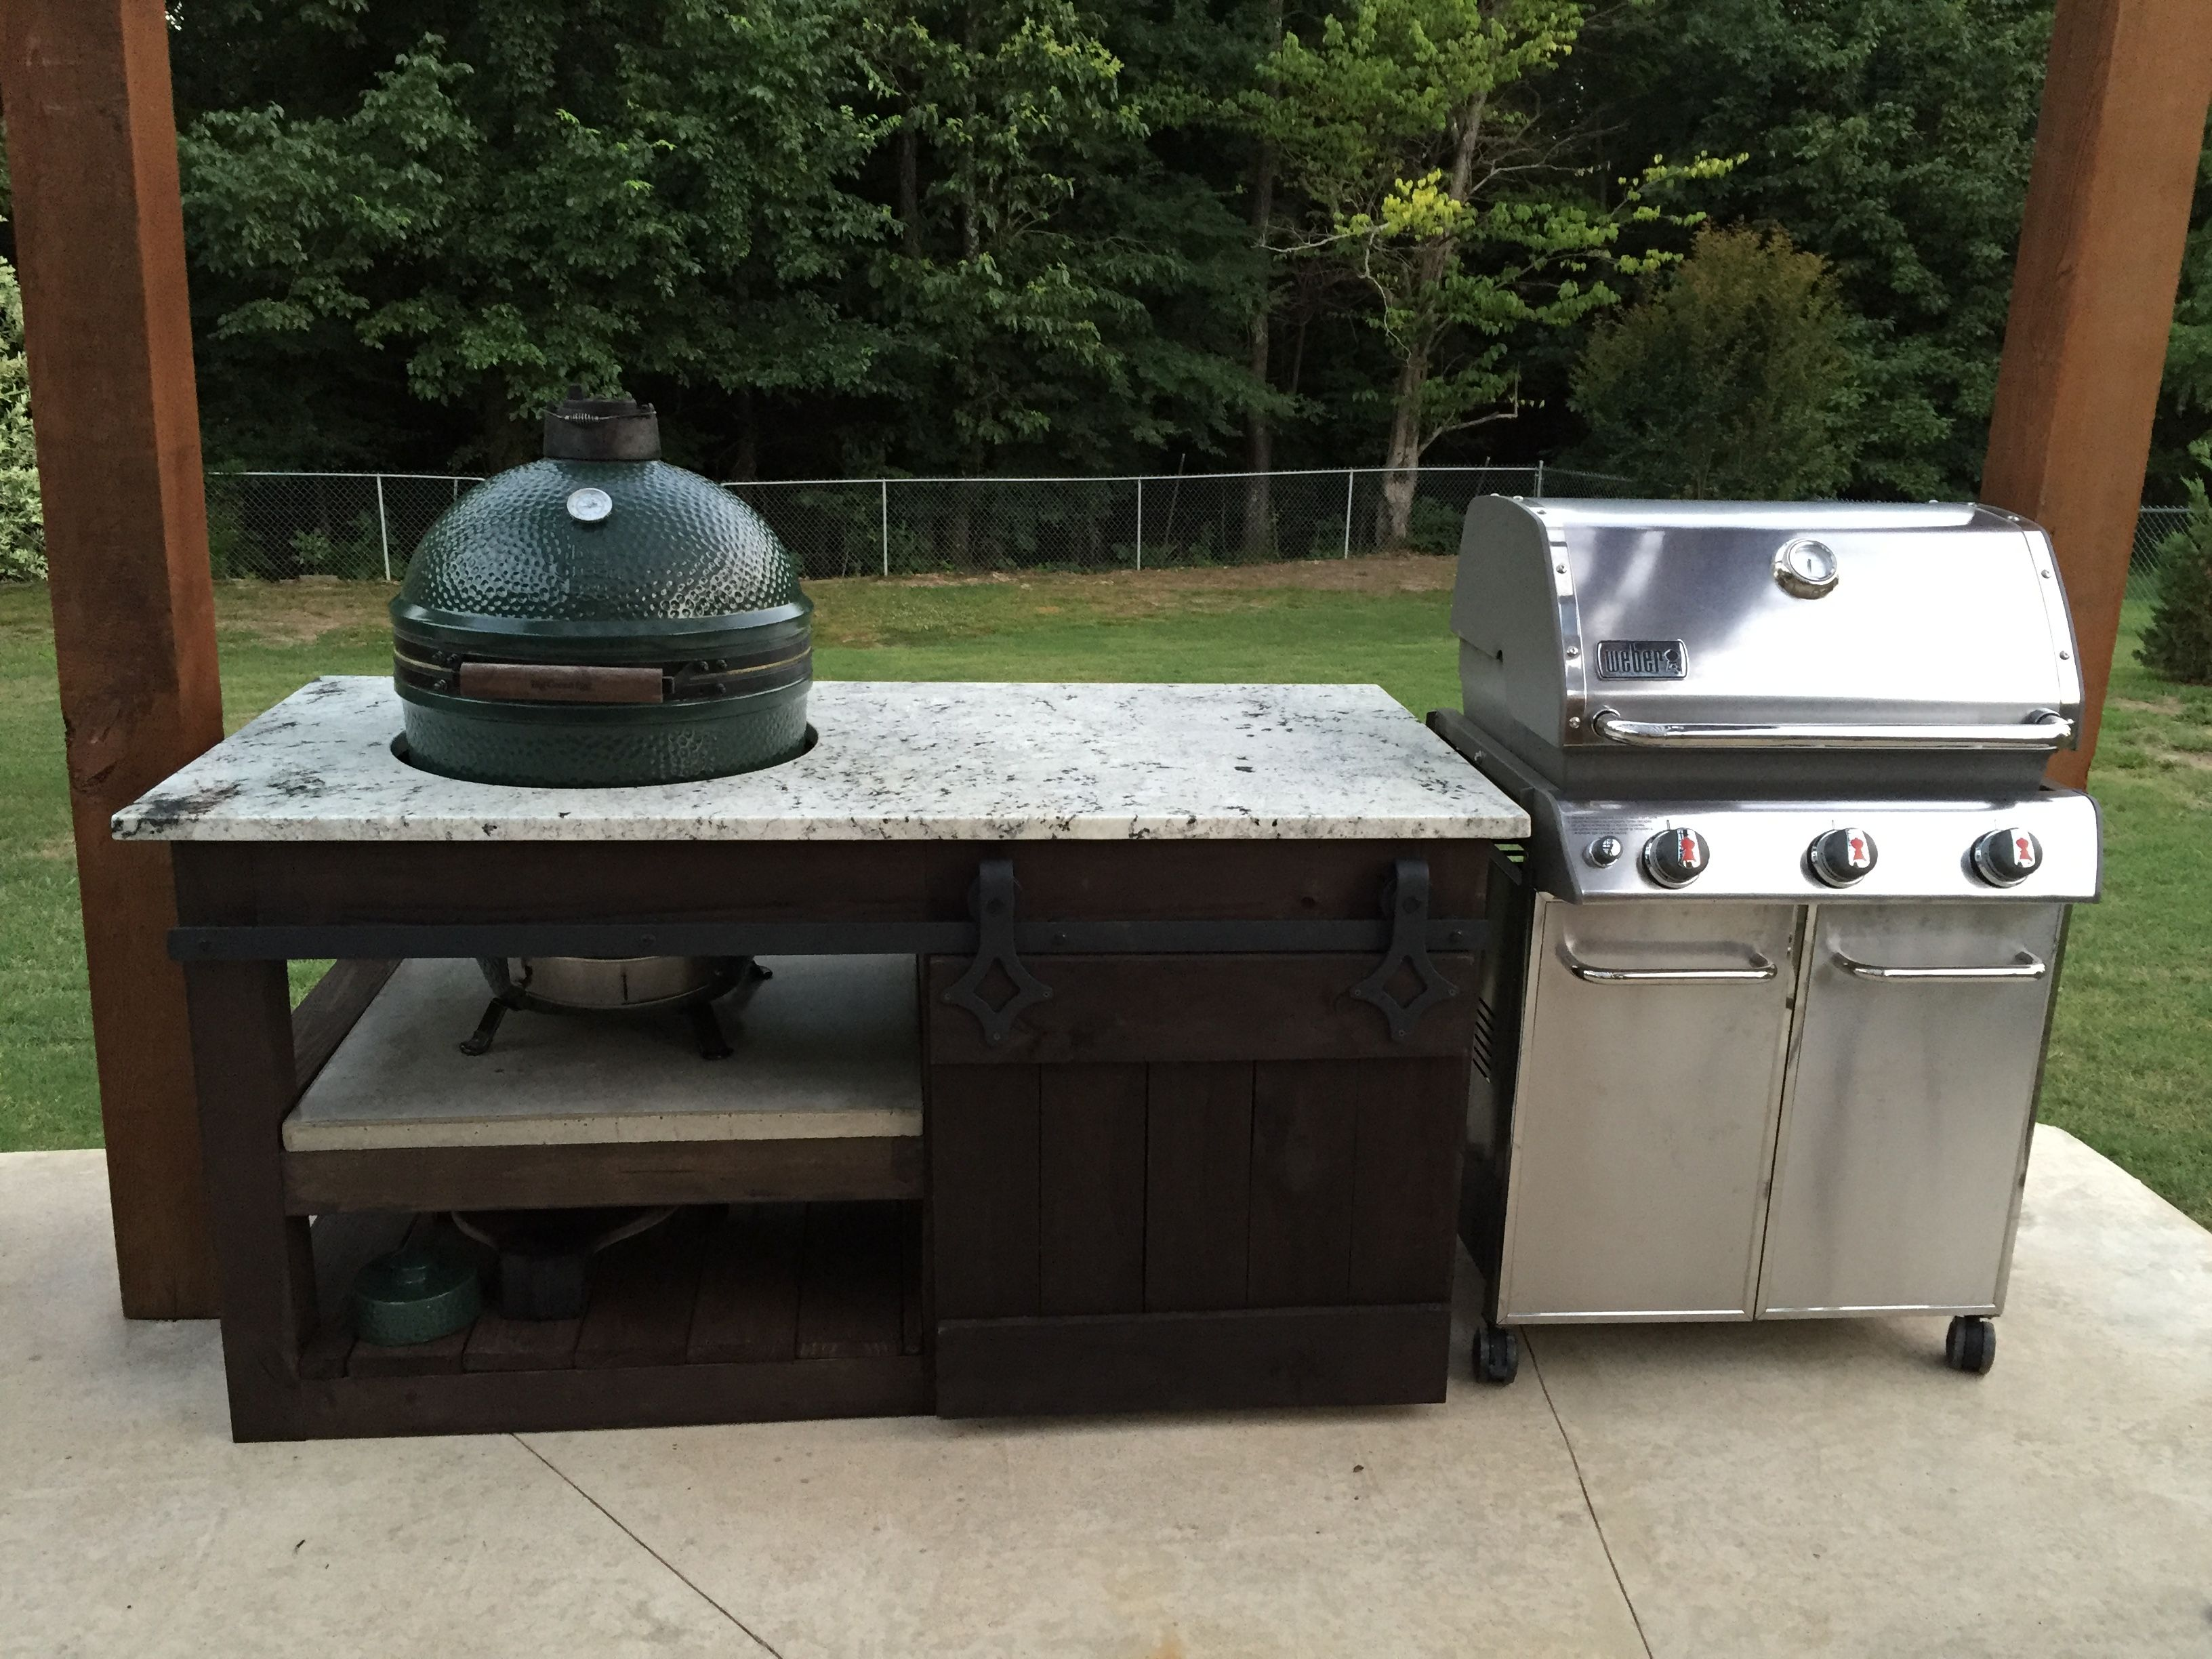 My version of the Big Green egg counter thelowcountrylady